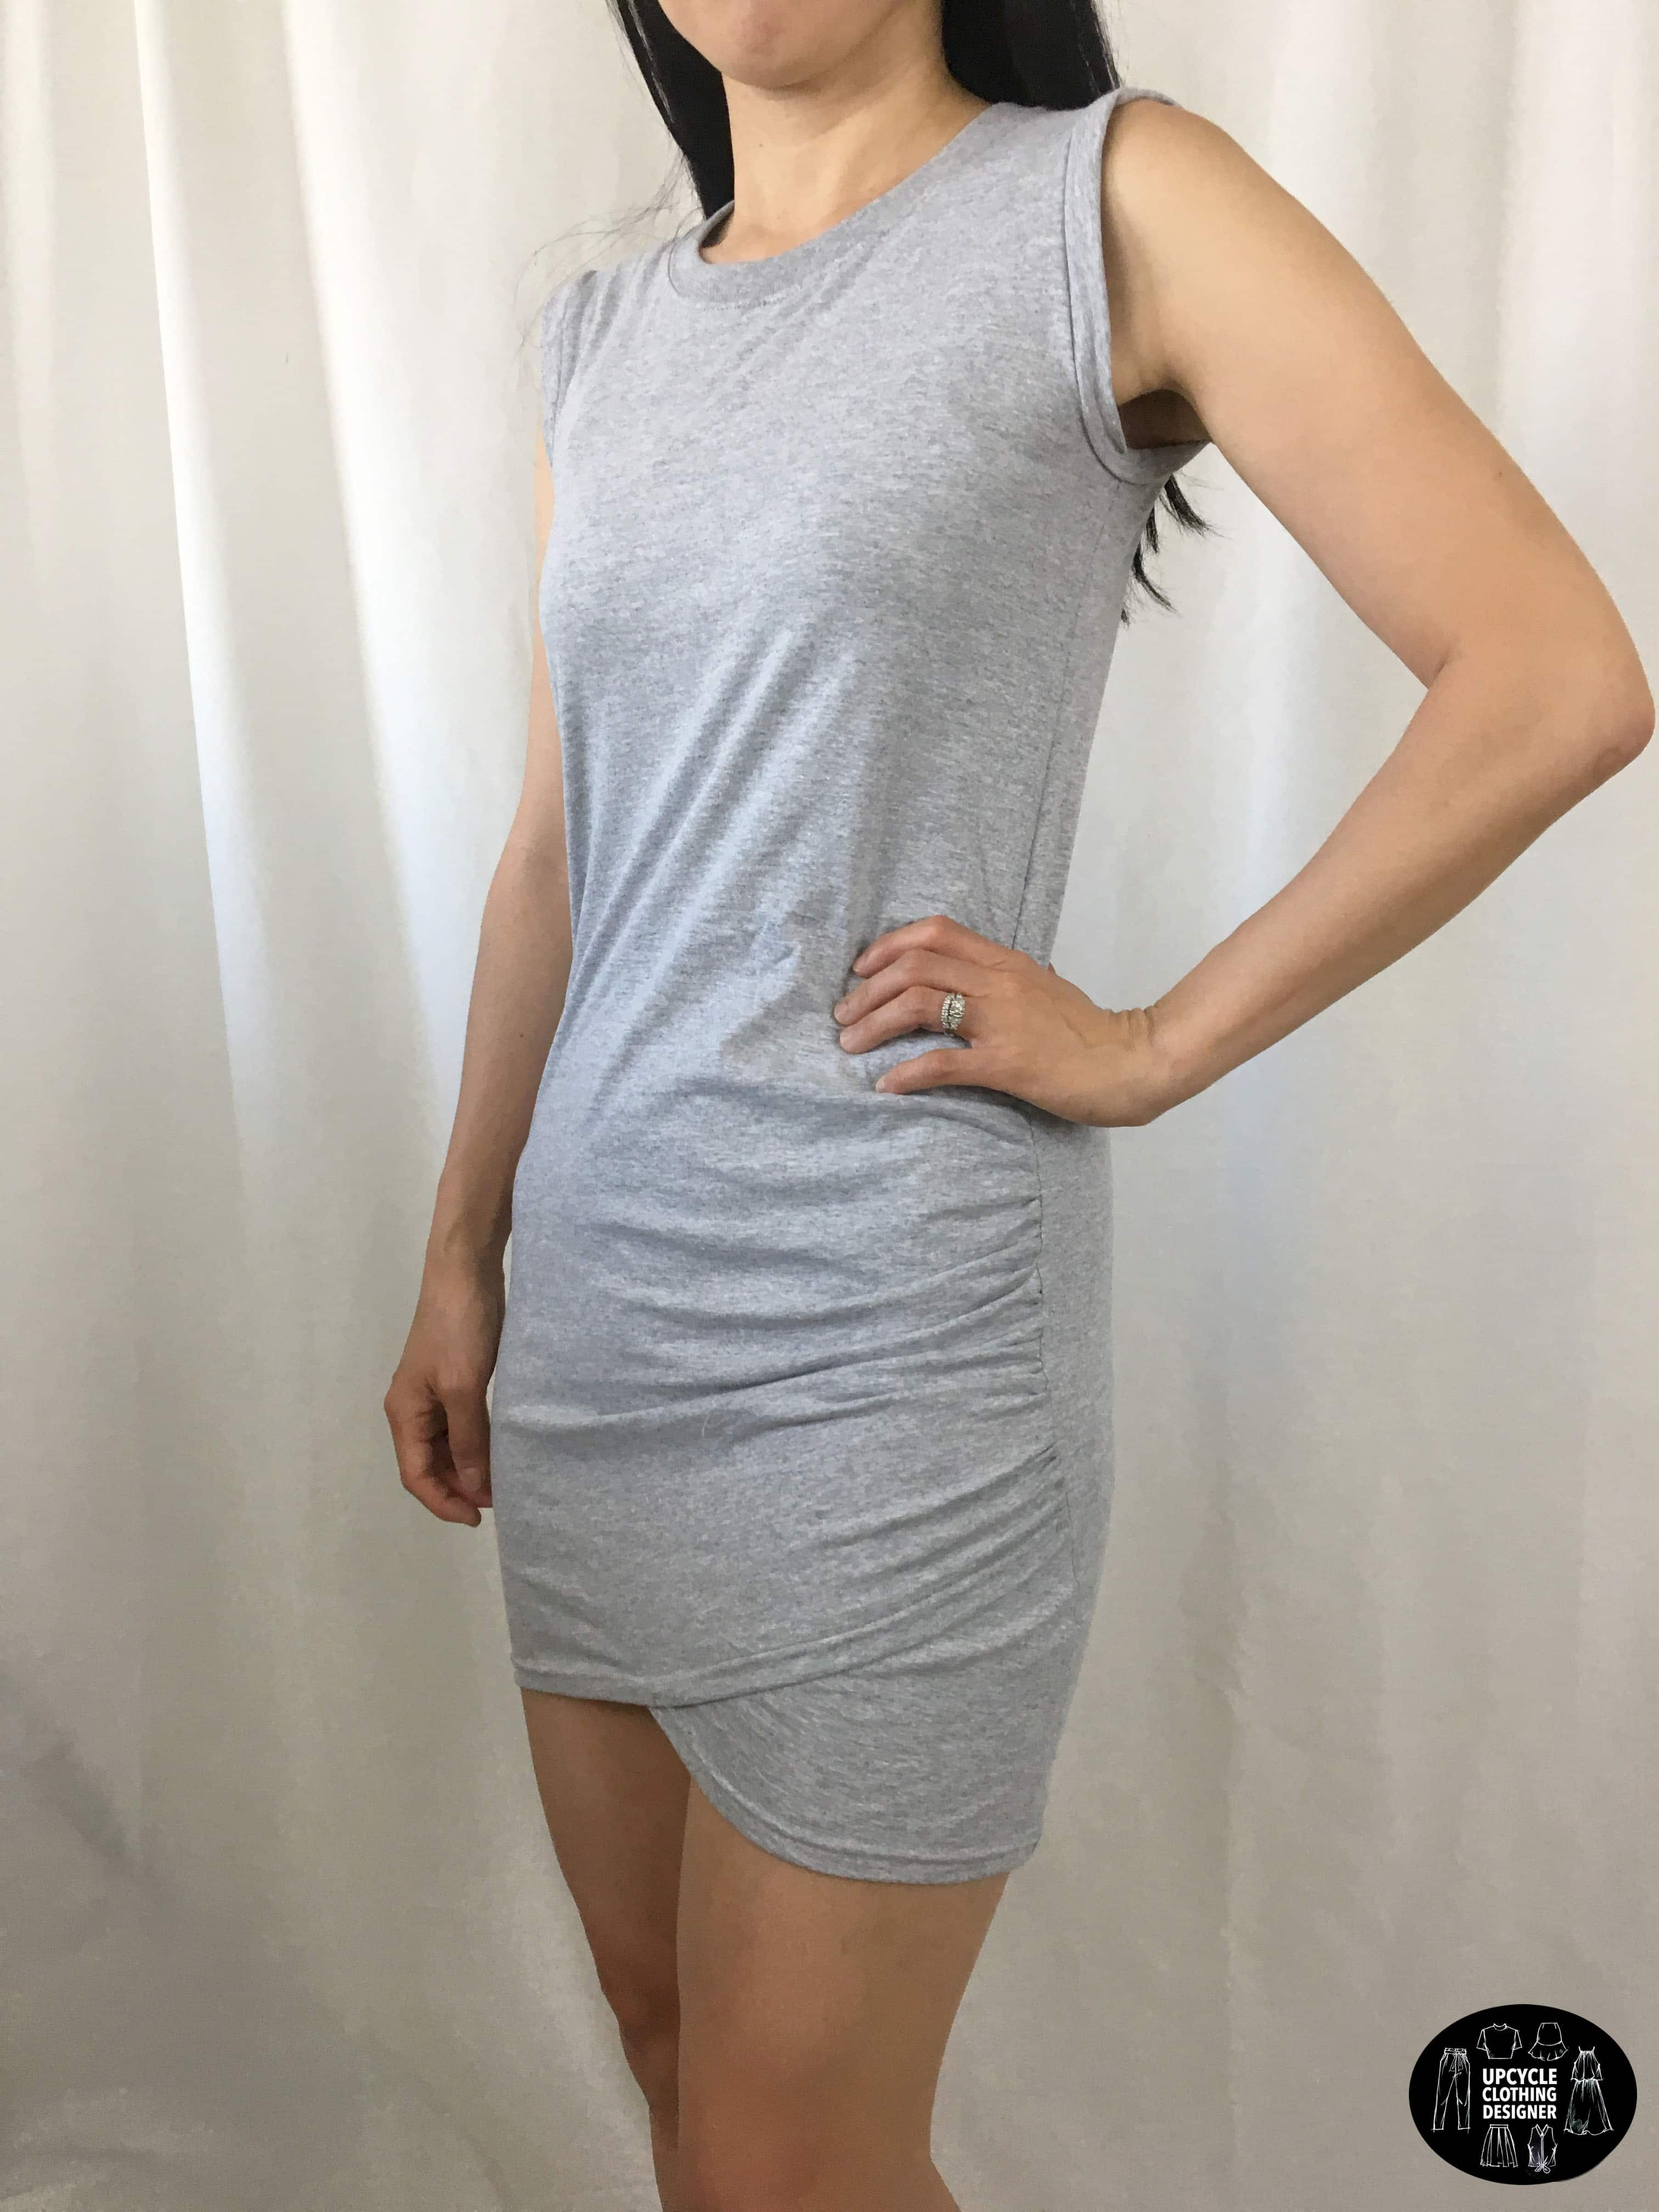 DIY side shirring dress from t-shirt sideview